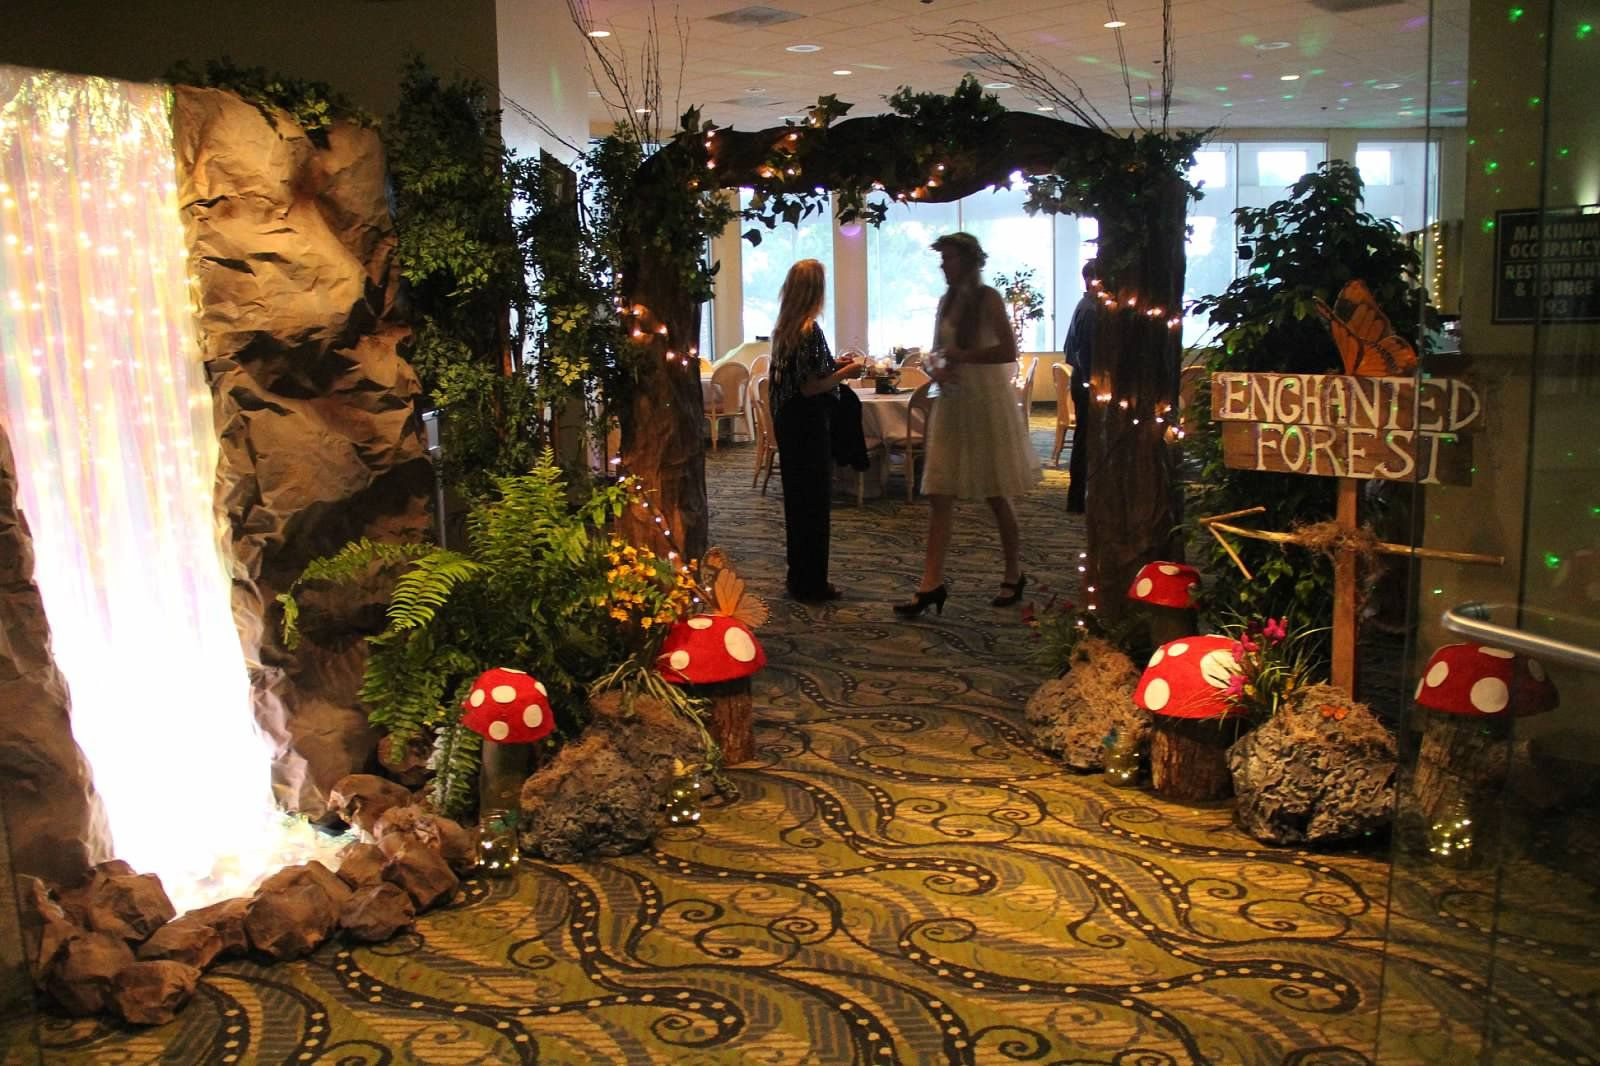 Bring the outdoors inside with lots of foliage and flowers